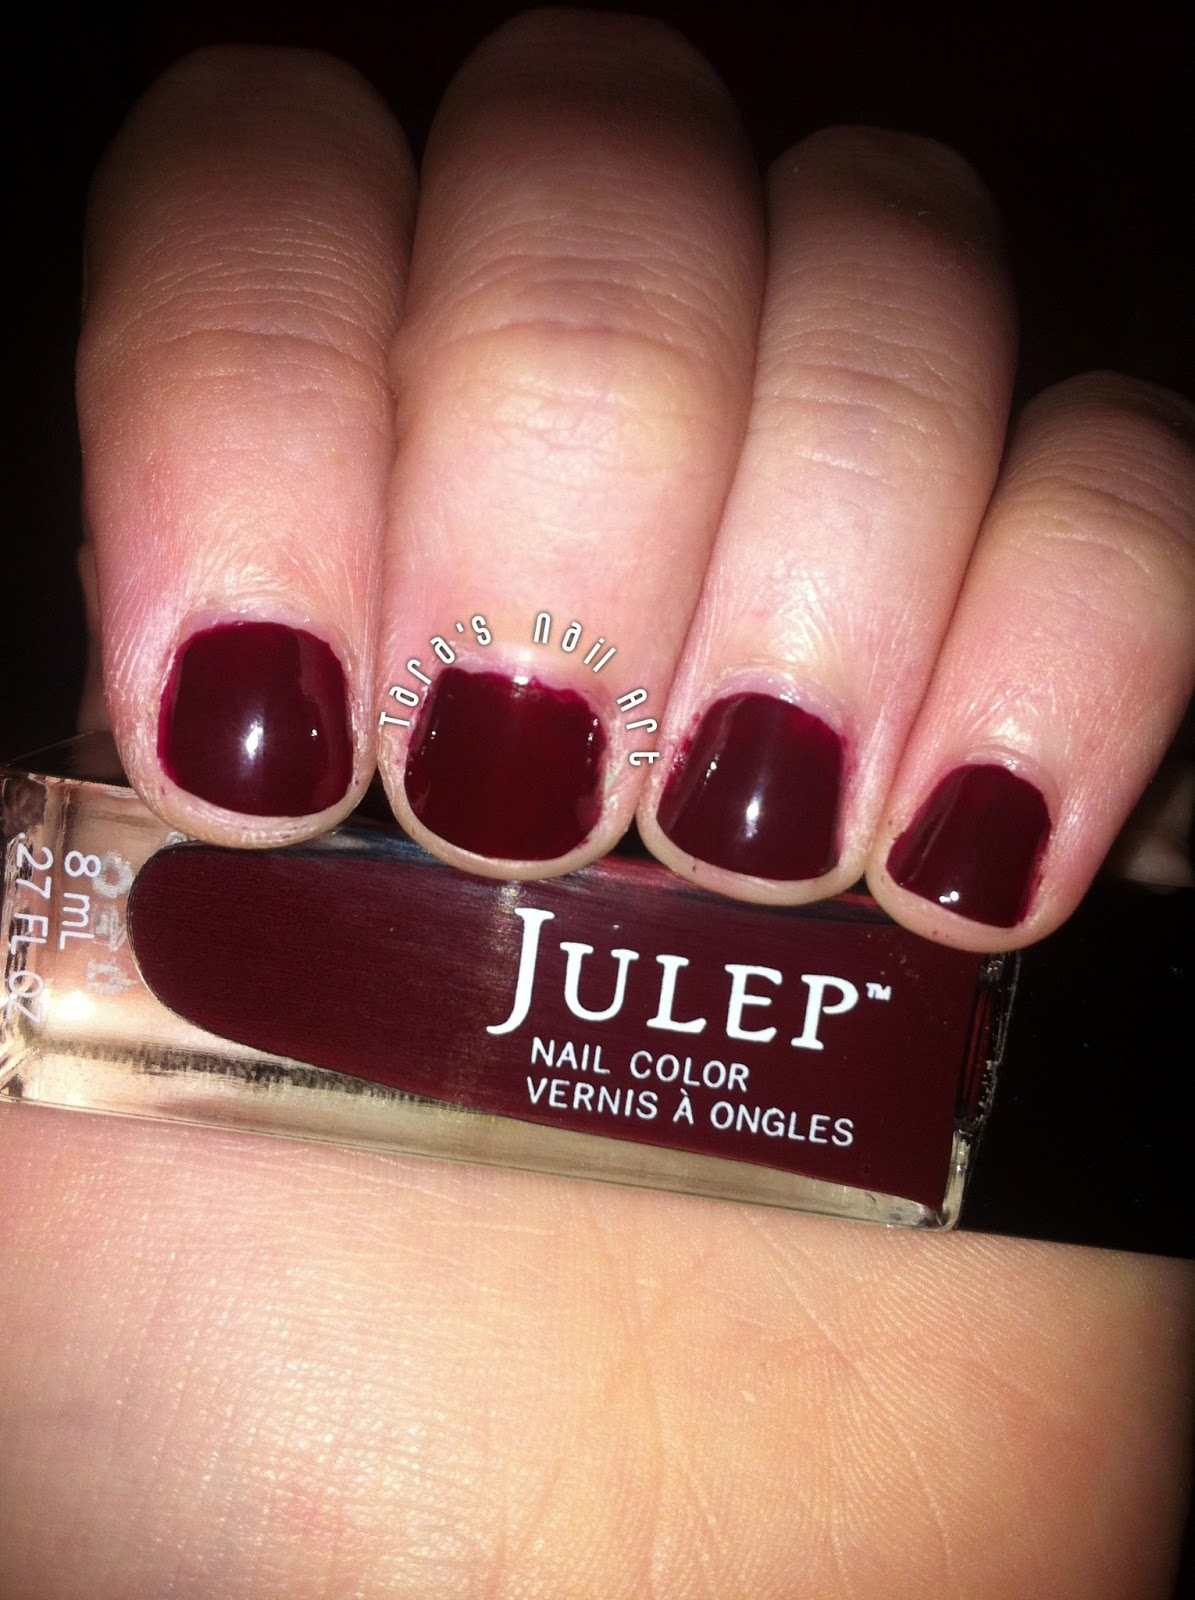 Julep Nail Polish Names - Absolute cycle